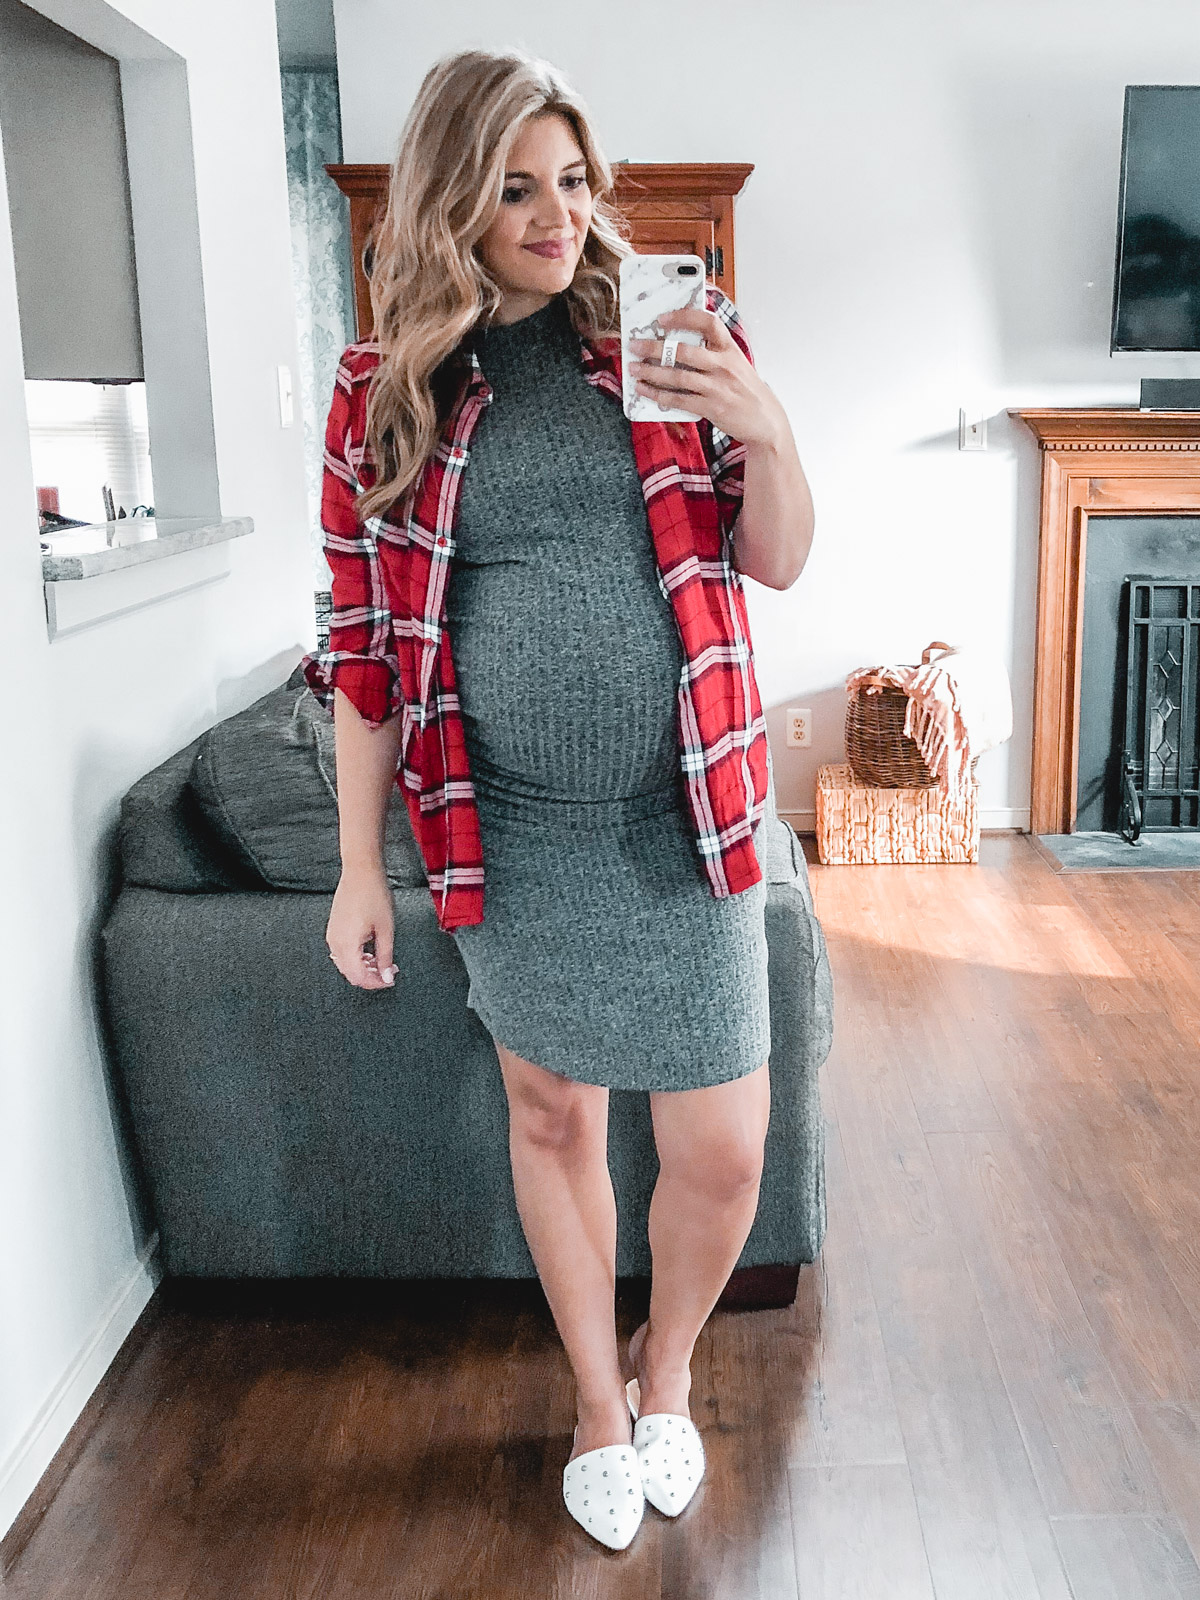 plaid top pregnancy outfit - fall pregnancy | Need plaid top outfit ideas? I'm sharing one $31 plaid top styled 15 different ways on bylaurenm.com!